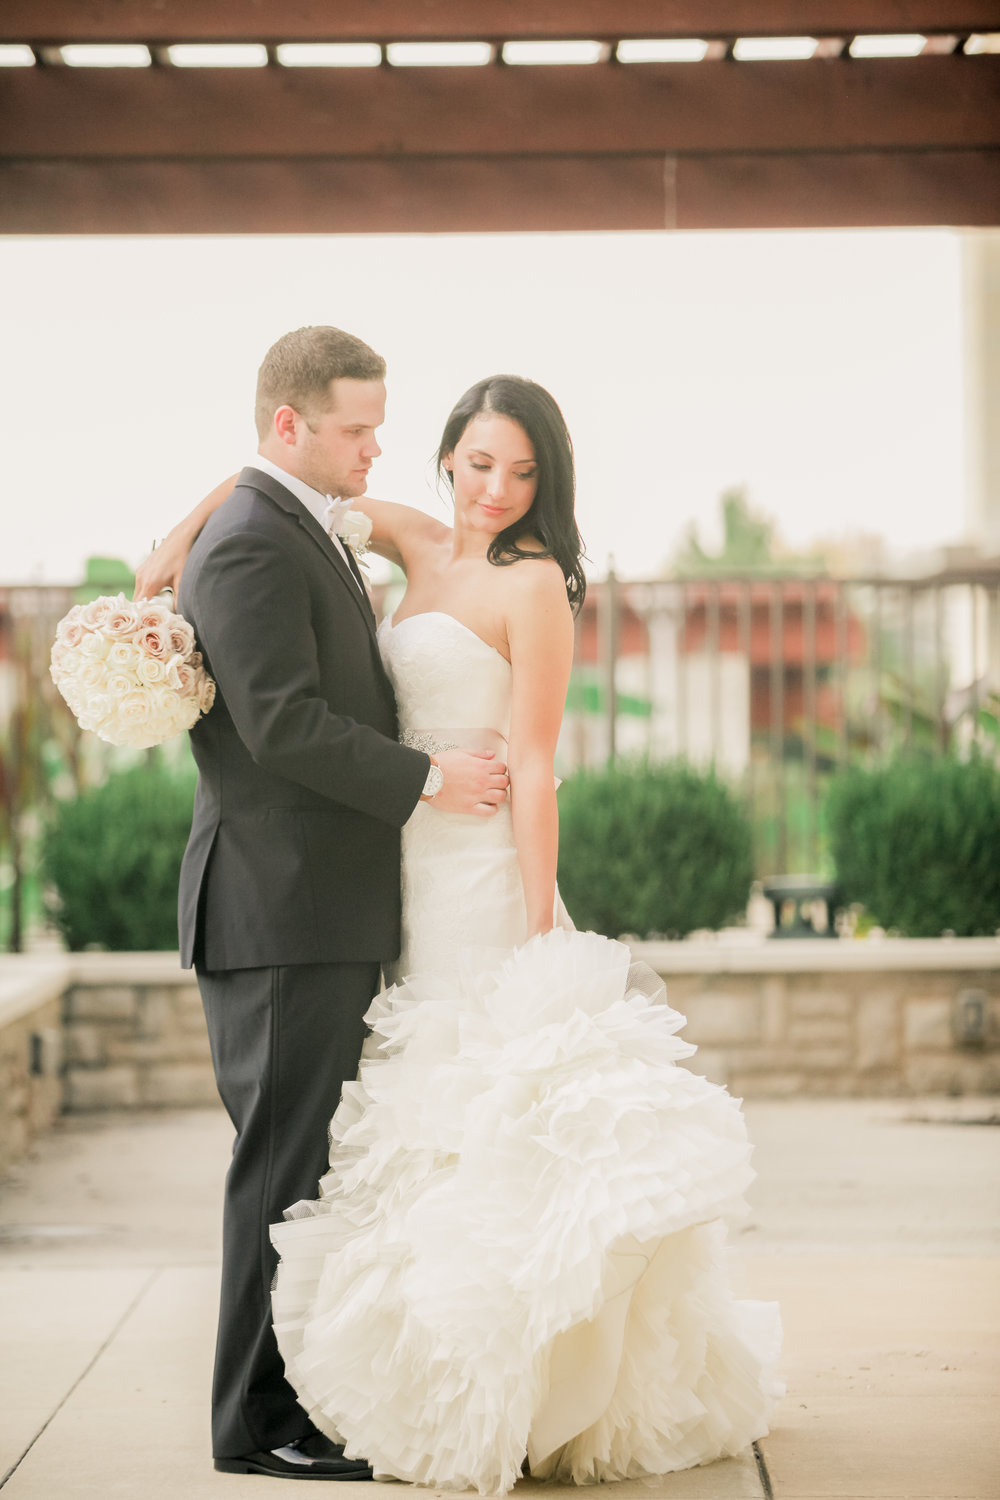 Jordan + Hunter - Theres one thing people tell you when planning a wedding,